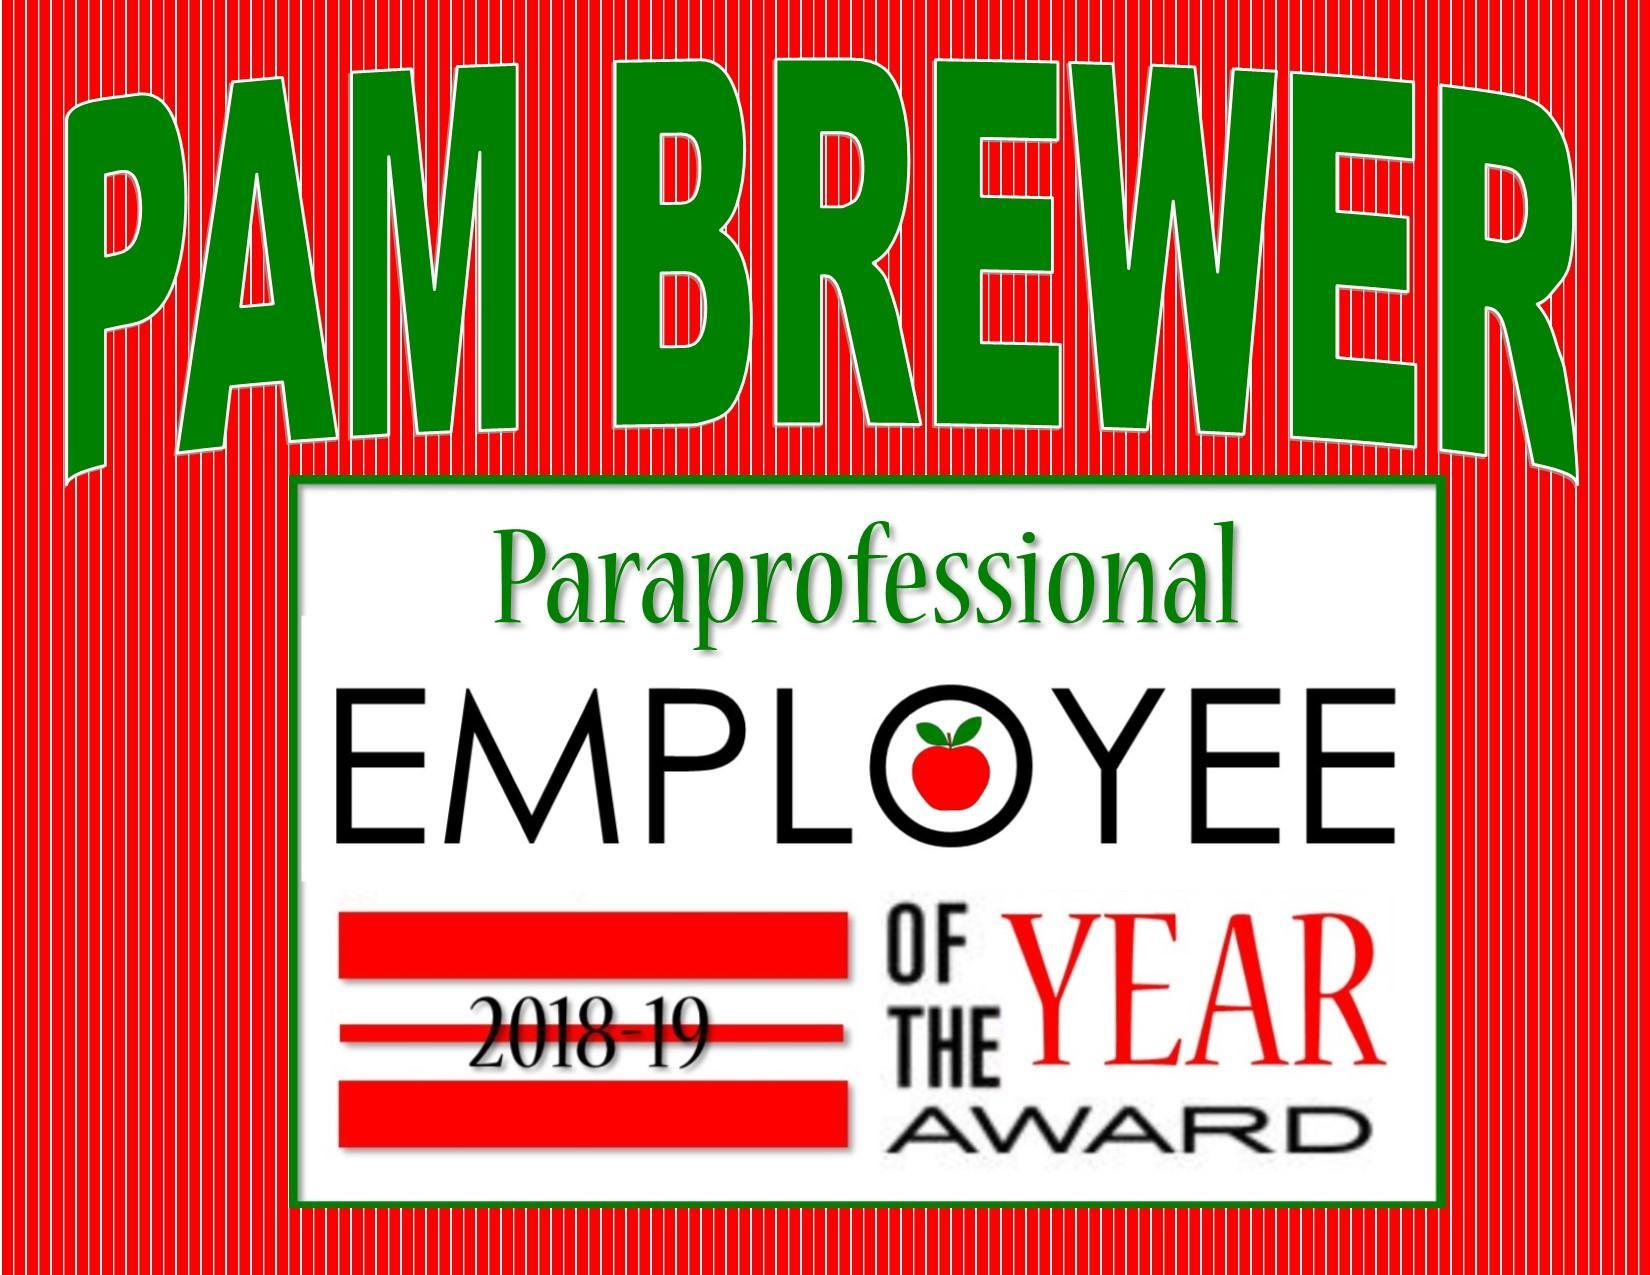 Pam Brewer, Employee of the Year